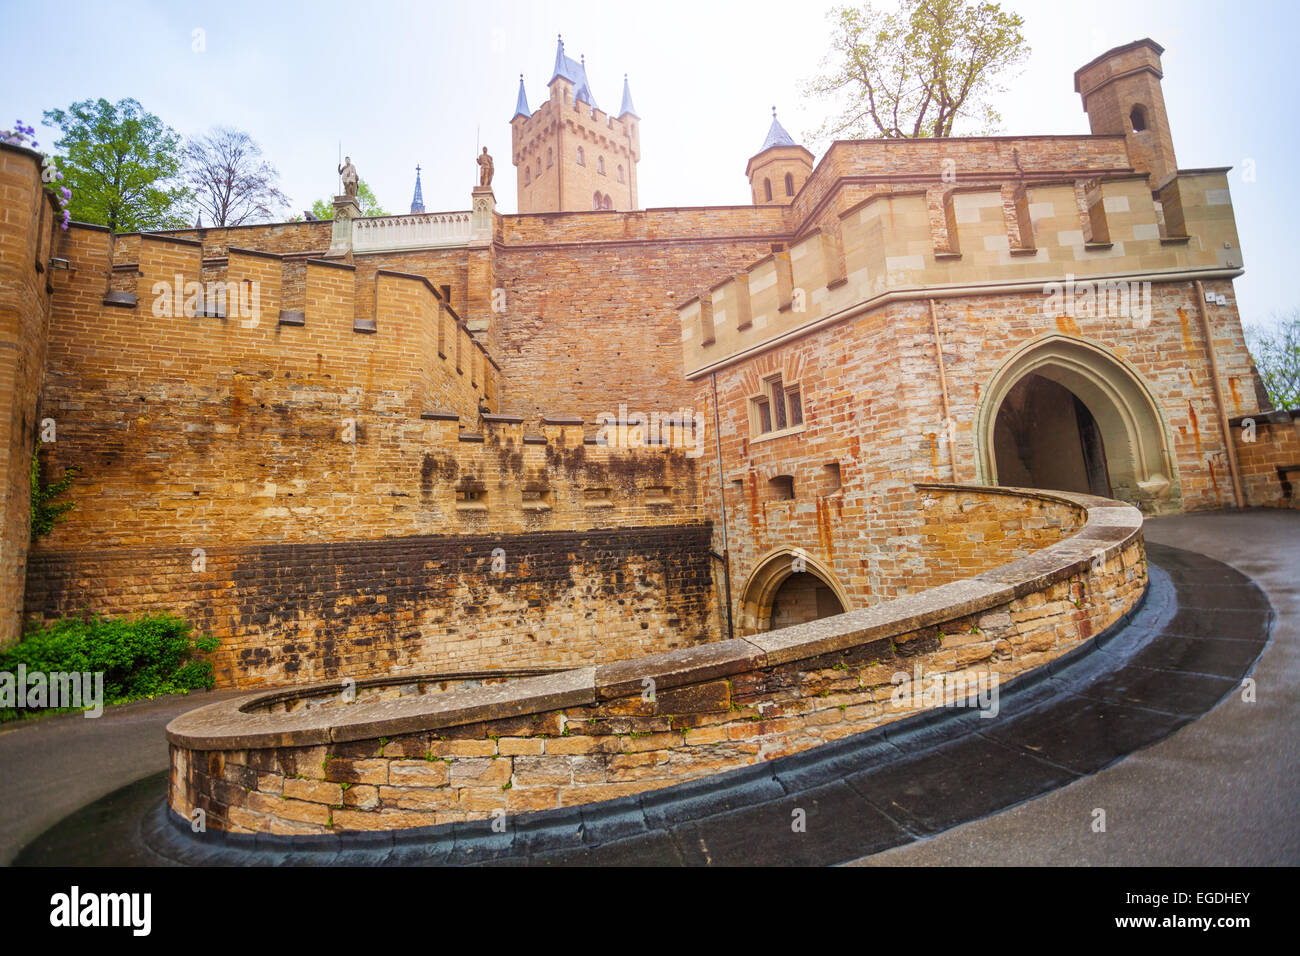 The inner yard of beautiful Hohenzollern castle - Stock Image